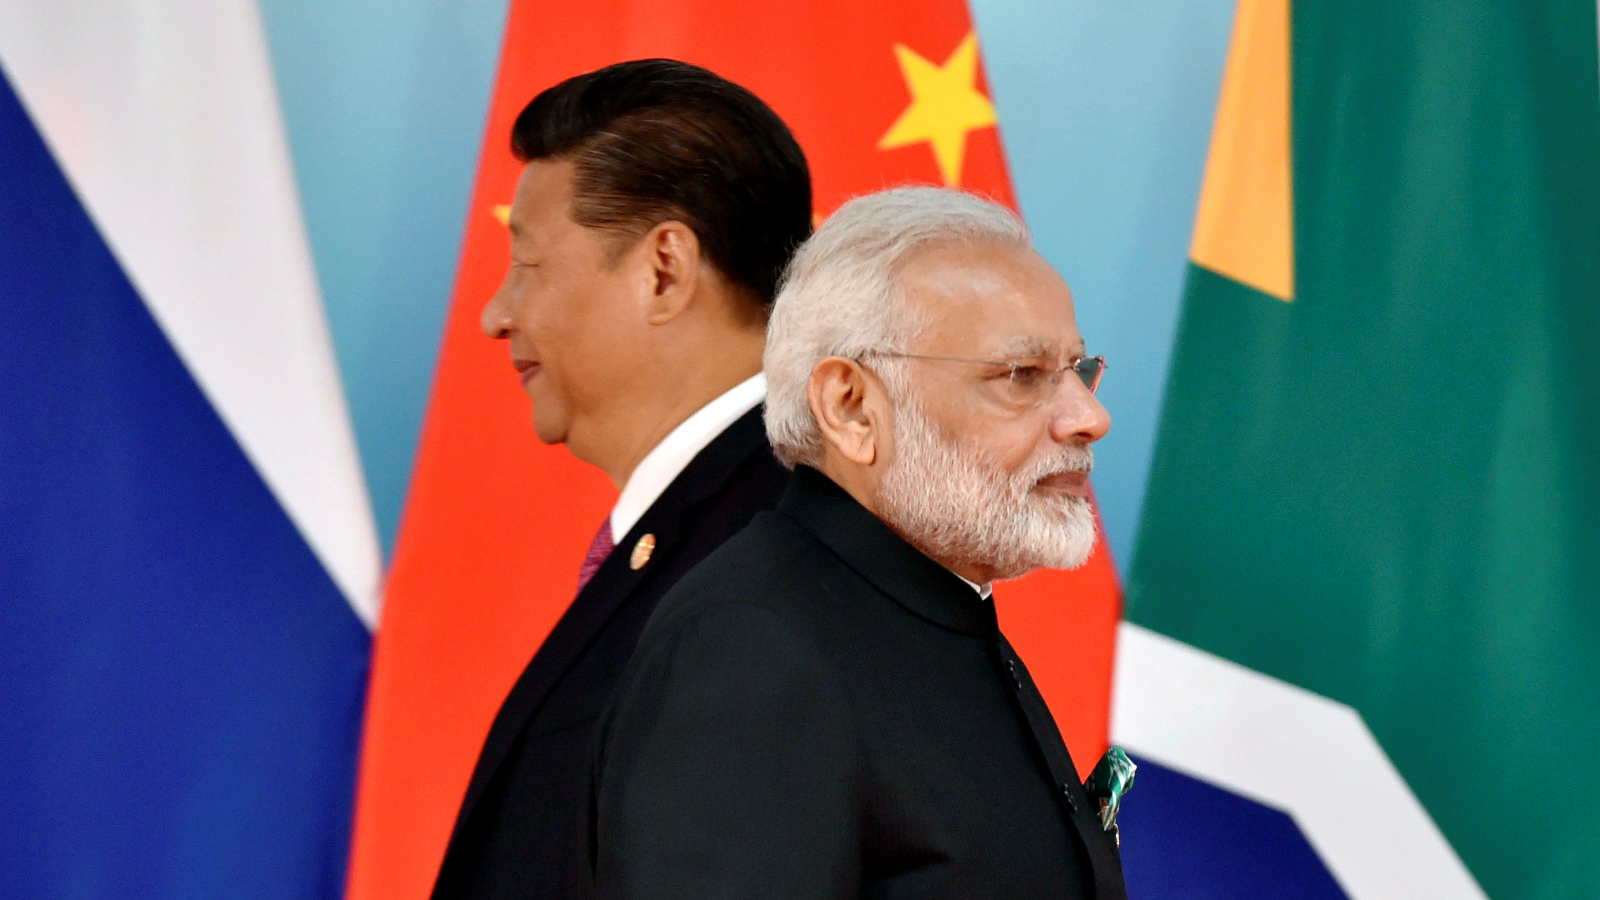 PM Modi heads back home after China visit